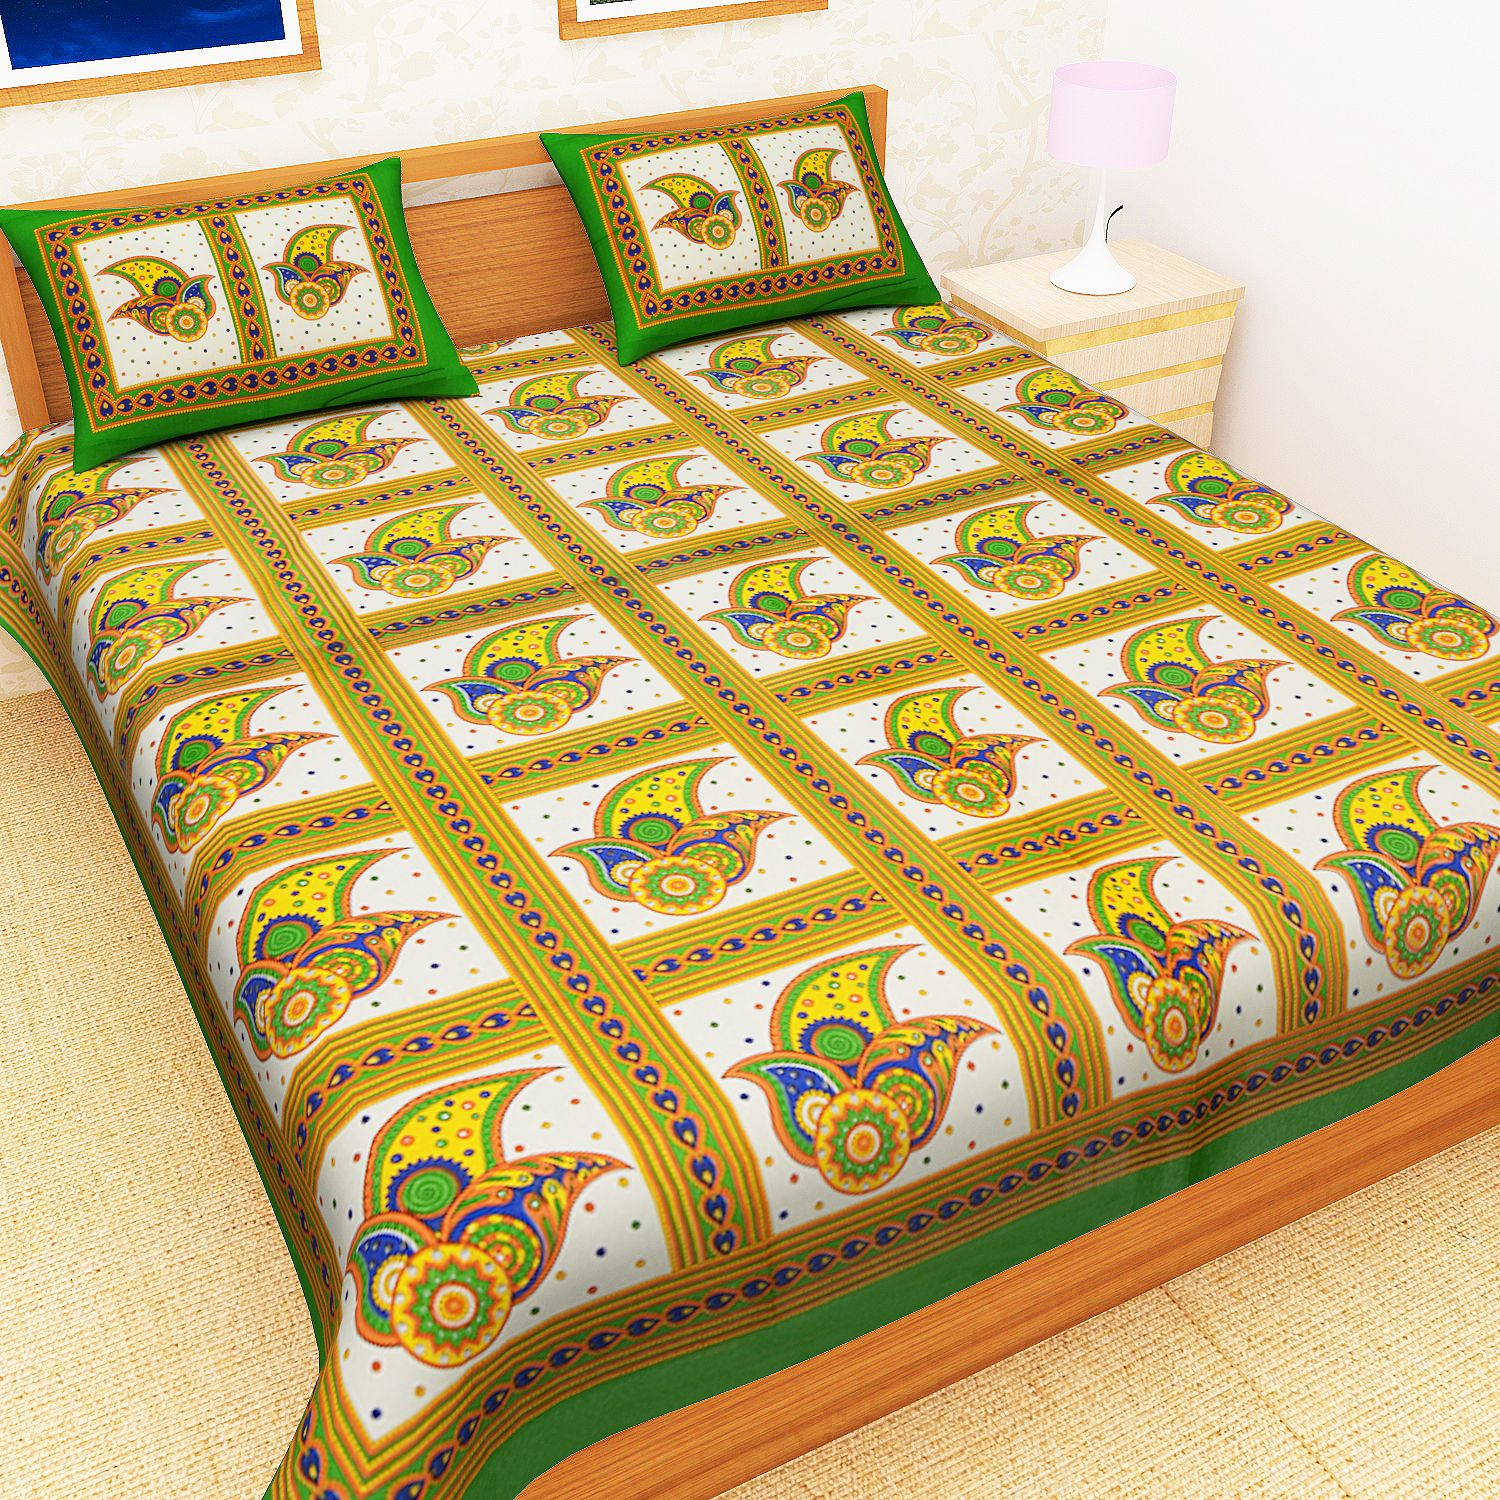 Kuber Industries™ Cotton Double Bedsheet with 2 Pillow Covers - Green (Colorful Leaf Design)